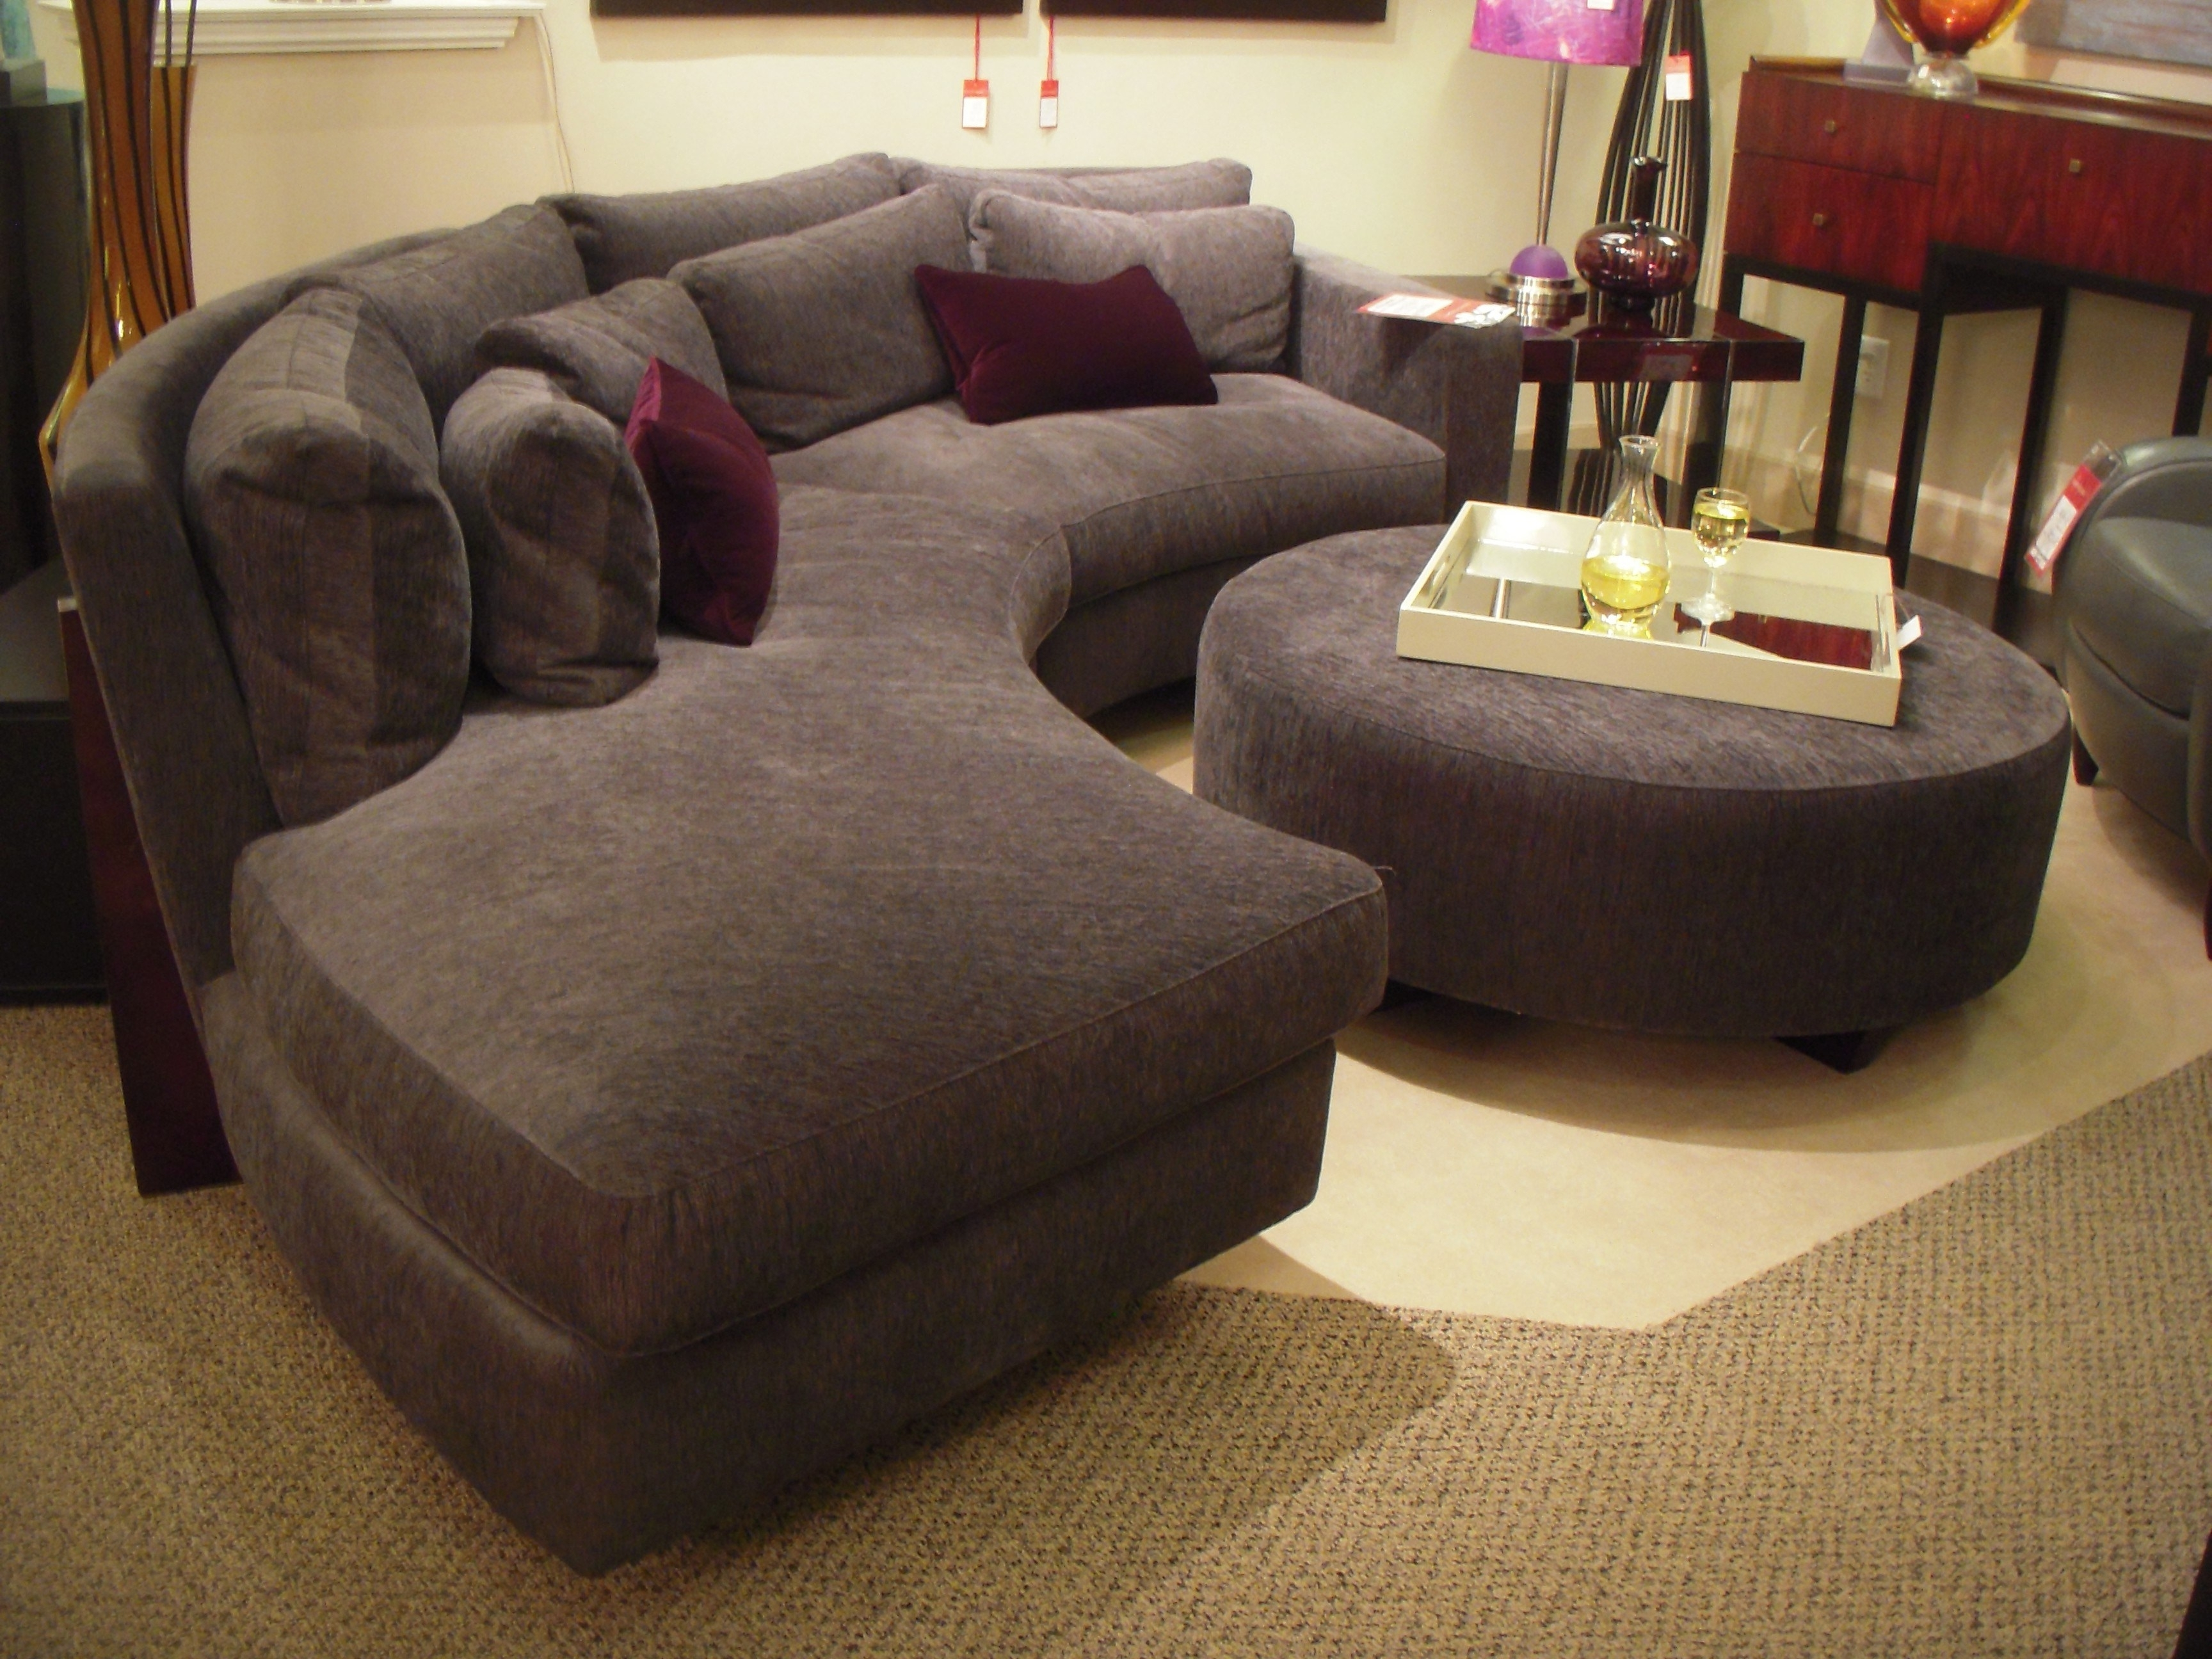 Inexpensive Sectional Sofa Regarding Most Current Affordable Sectional Sofas (View 11 of 20)